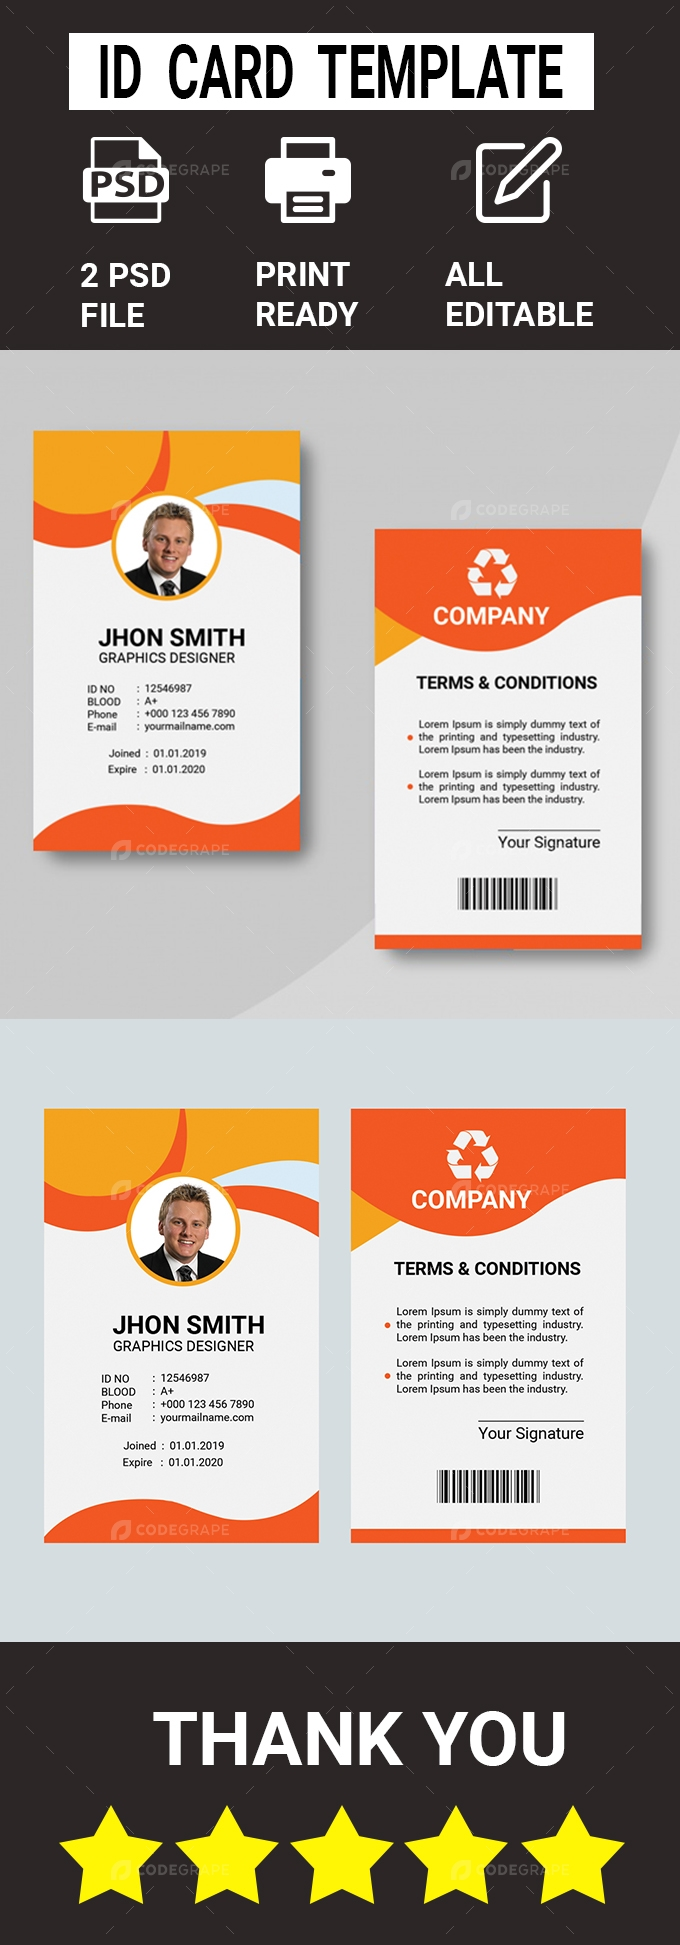 ID card Template Design